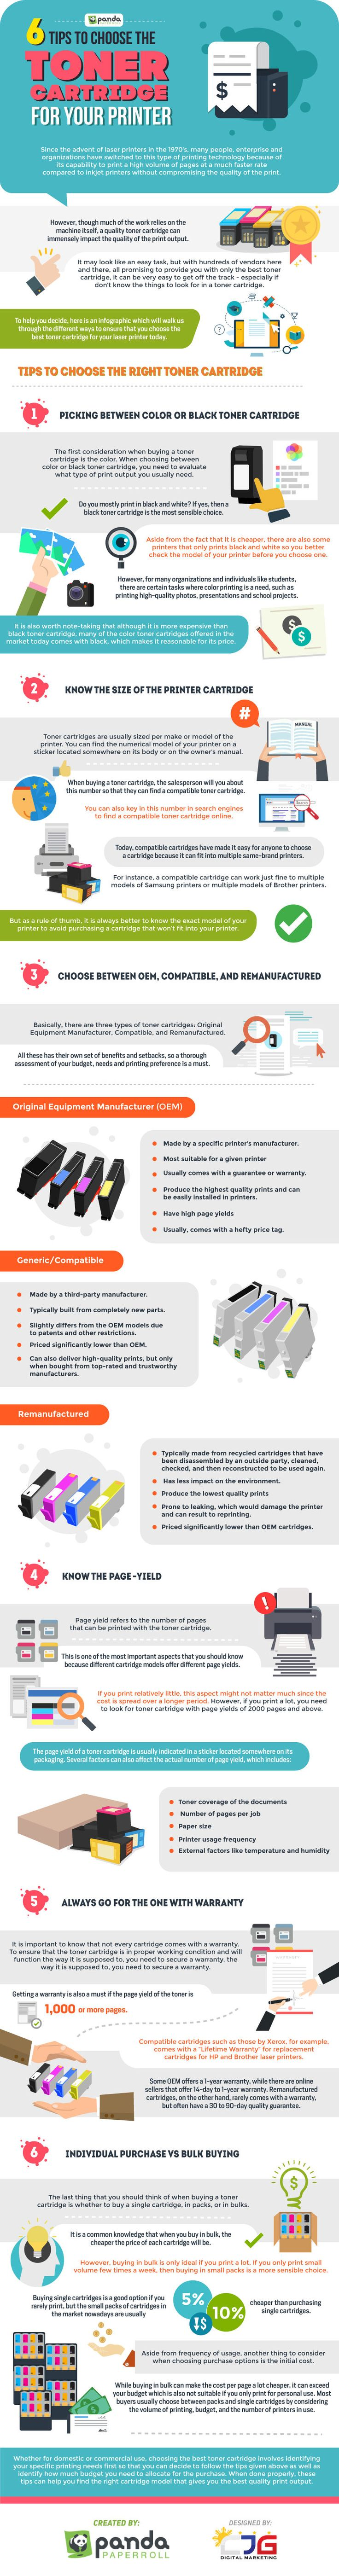 6 Tips to finding the right Toner Cartridges for your printer https://www.sprint-ink.co.uk/blog/6-tips-to-finding-the-right-toner-cartridges-for-your-printer